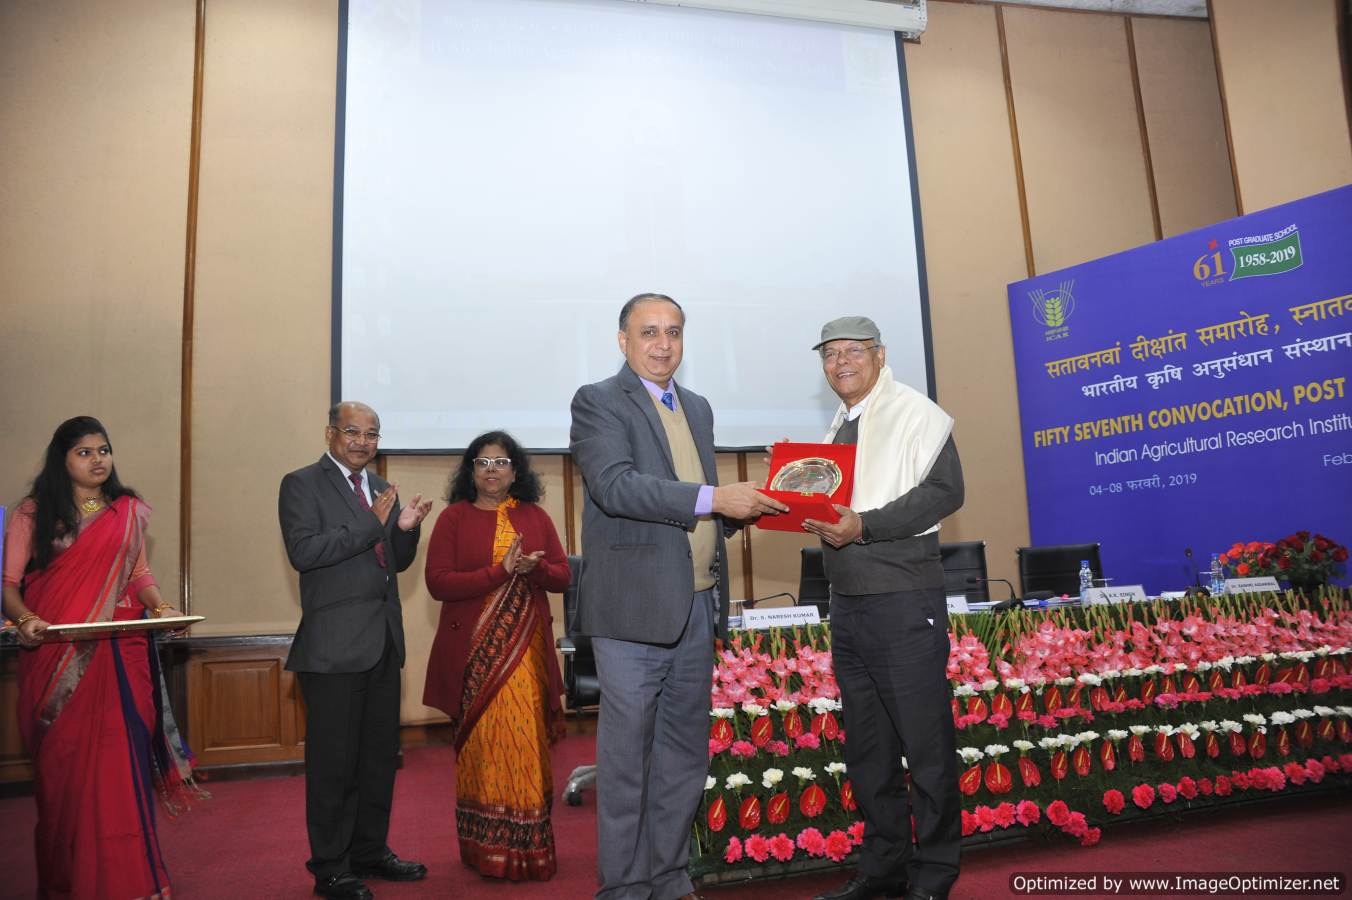 Dr. A.K. Singh, DDG (Ext) & Director IARI presenting momento to Dr. Swapan K. Dutta , Former DDG (Crop Science) at Professors Presentation during 57th IARI convocation